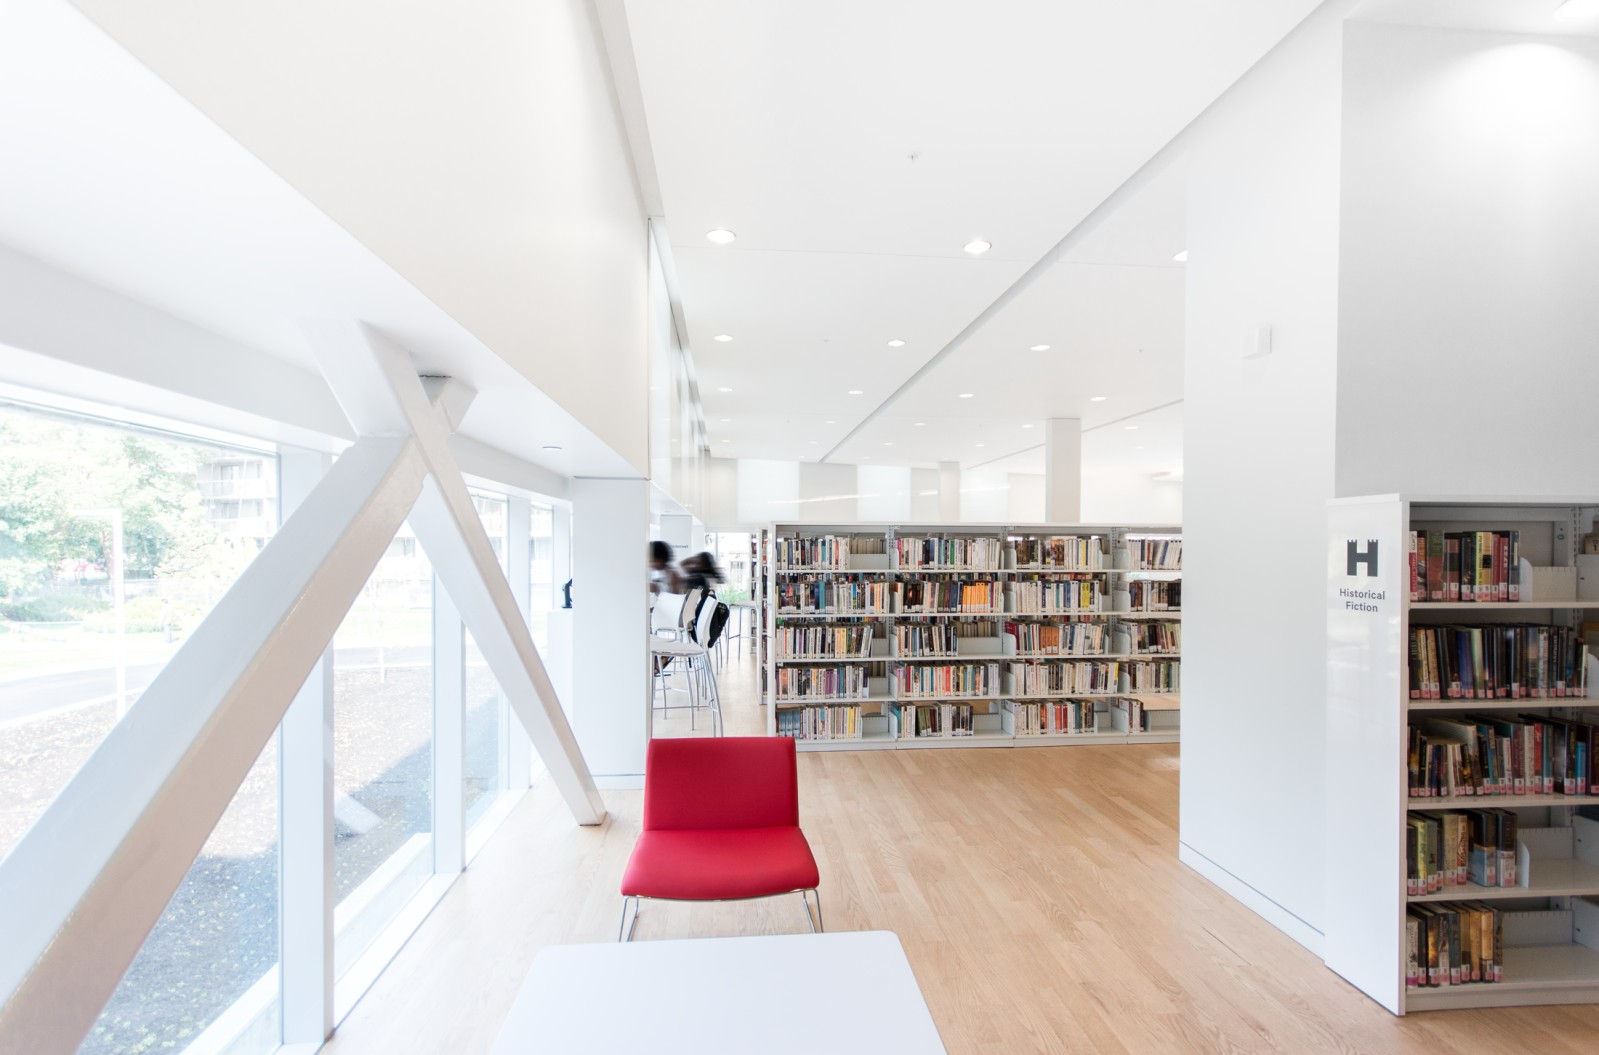 Saul-Bellow Library